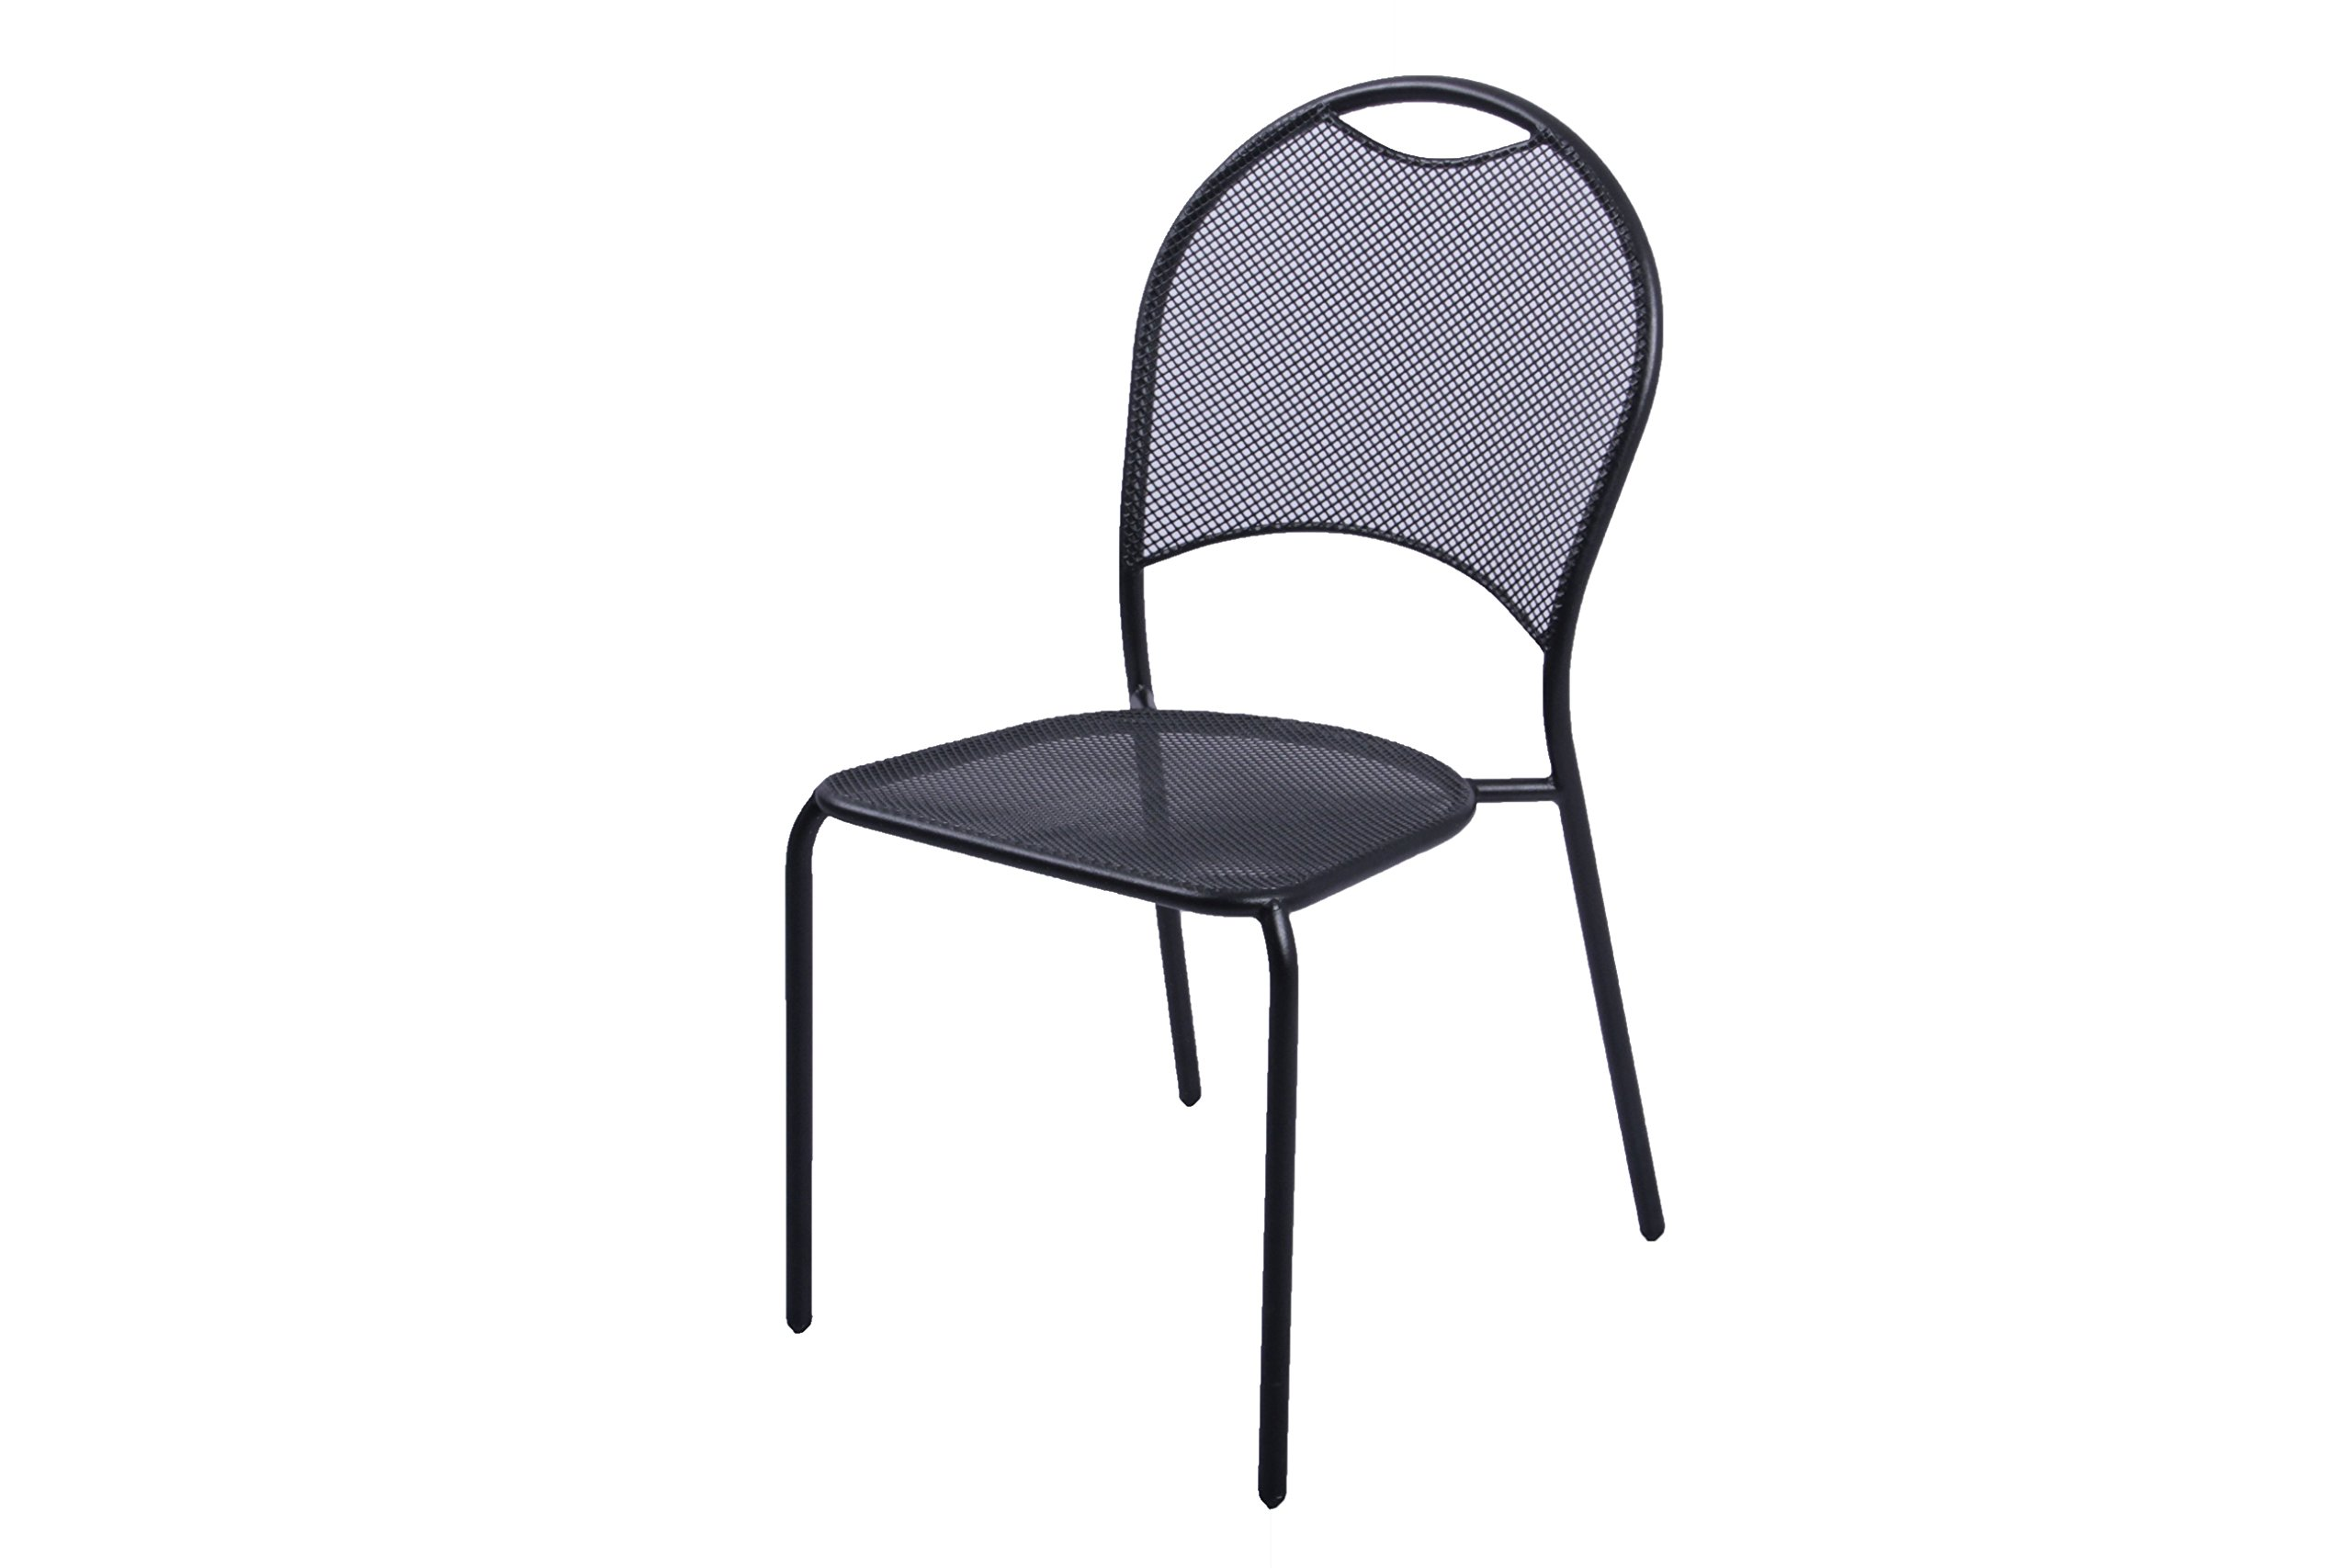 Plantation Prestige Commercial Furniture 2150700-0450 Barkley Side Chair, Steel Material Type, Charcoal